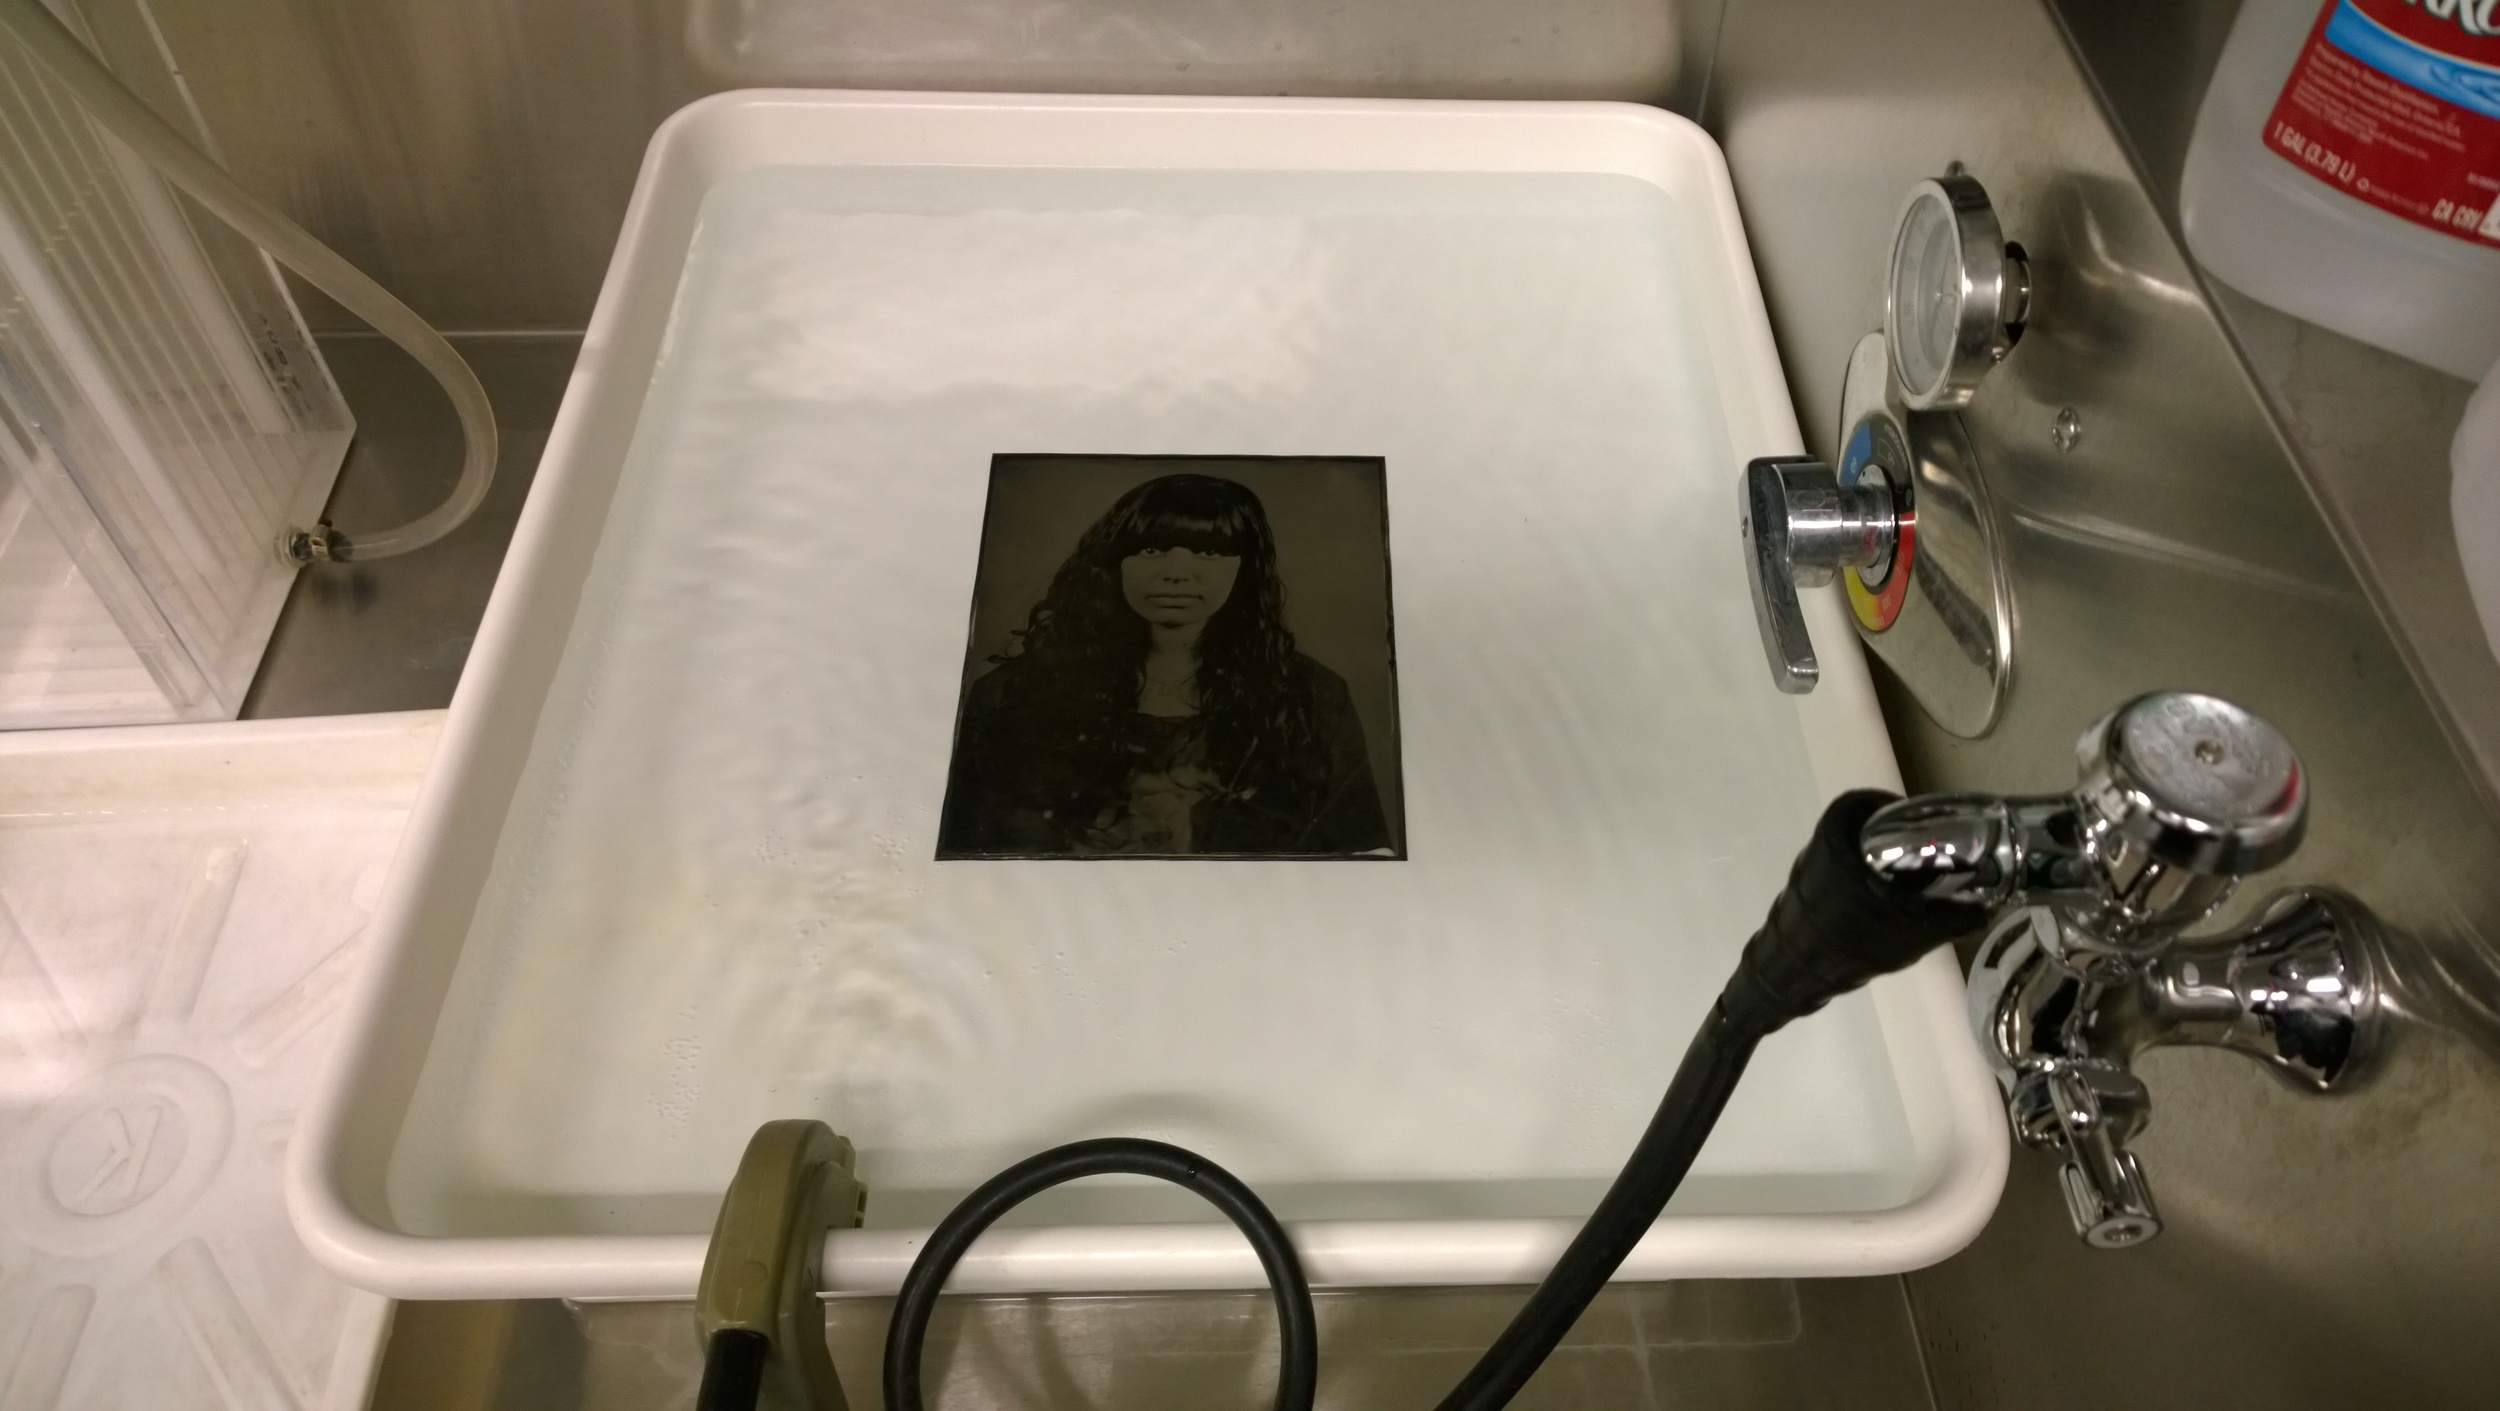 A tintype sits in the washafter developing.